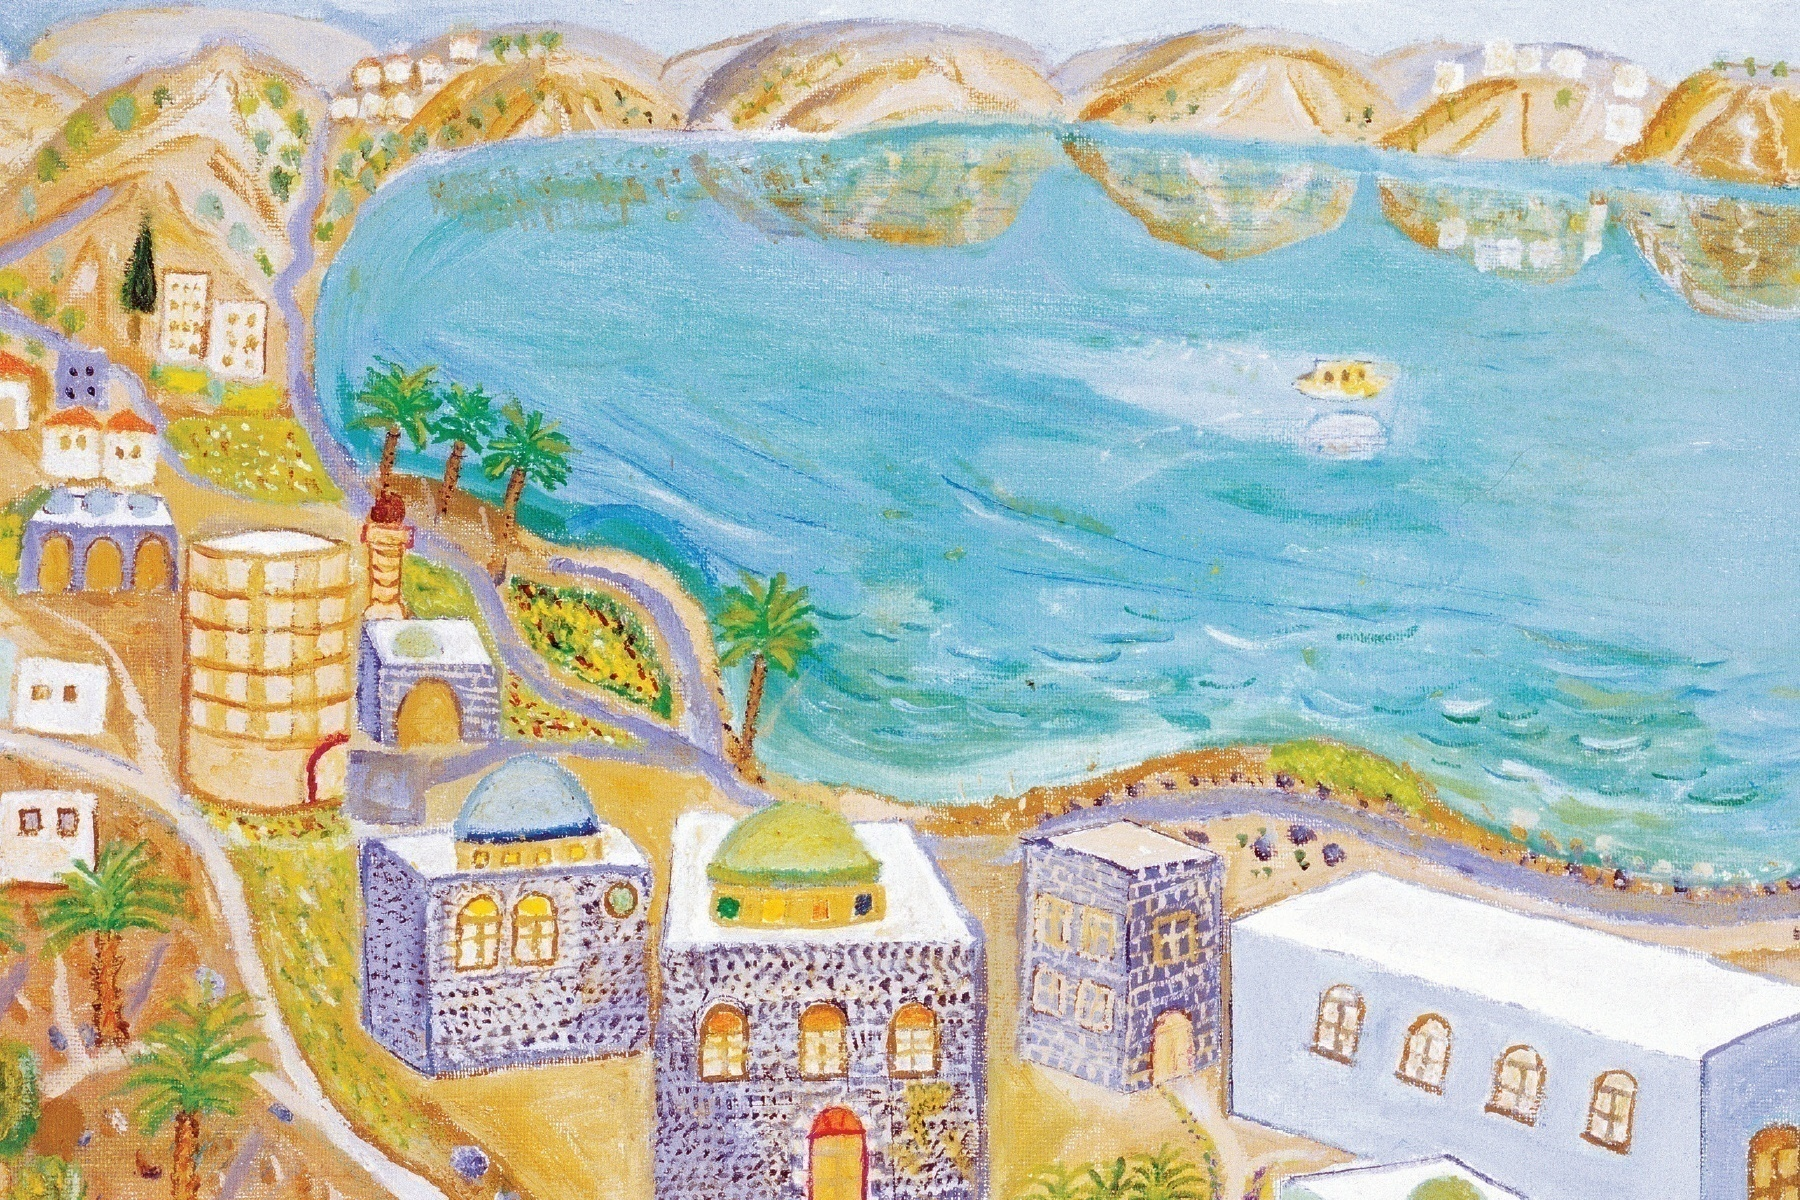 """Sea of Galilee-Tiberias"" by David Shalom: ""I love Tiberias. I like to look at the Sea of Galilee, it is so peaceful. I think it cures me."""